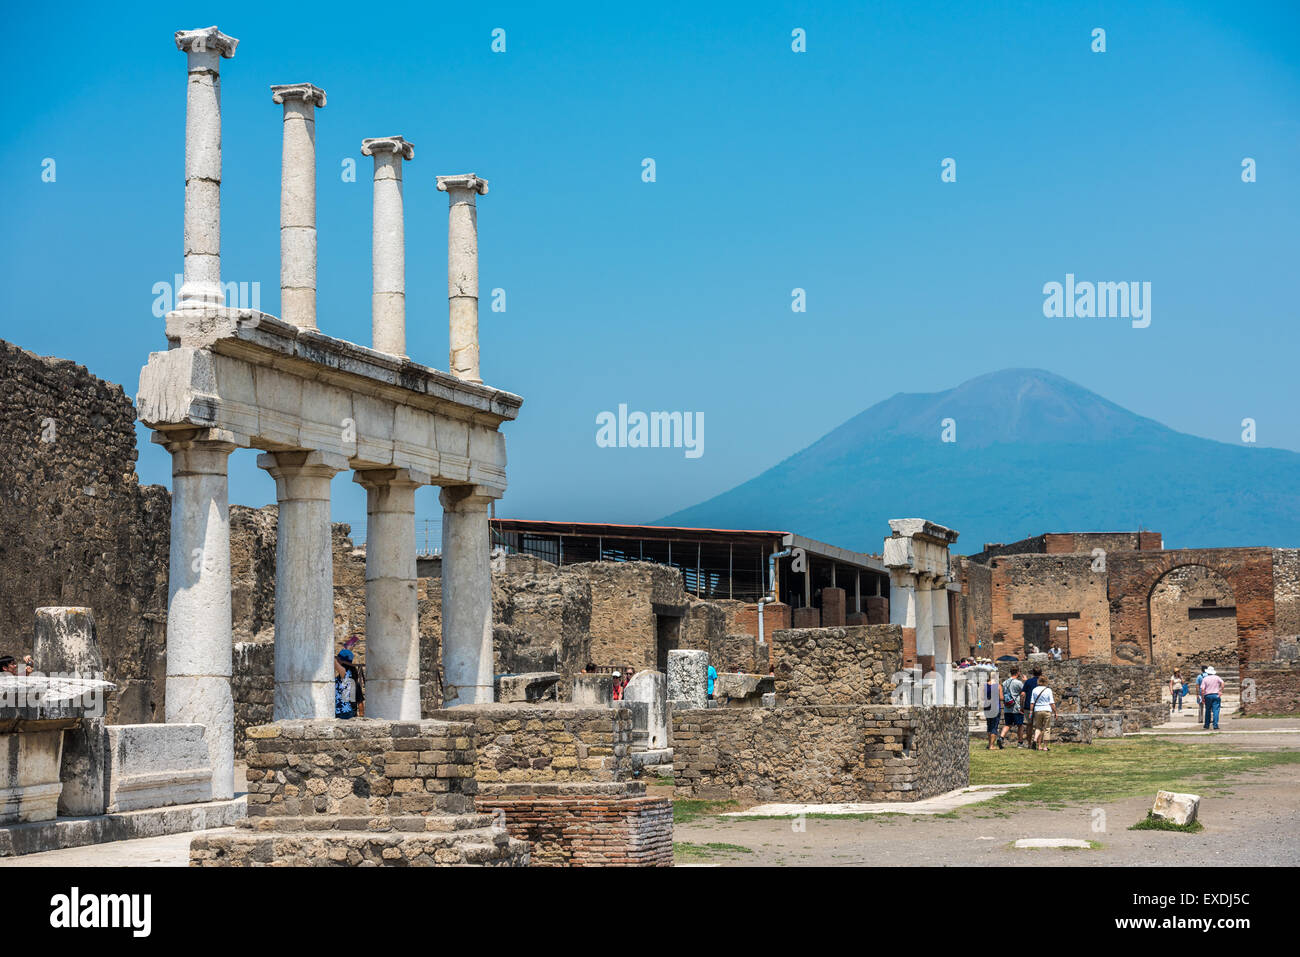 Ruins of ancient Pompeii, Italy - Stock Image